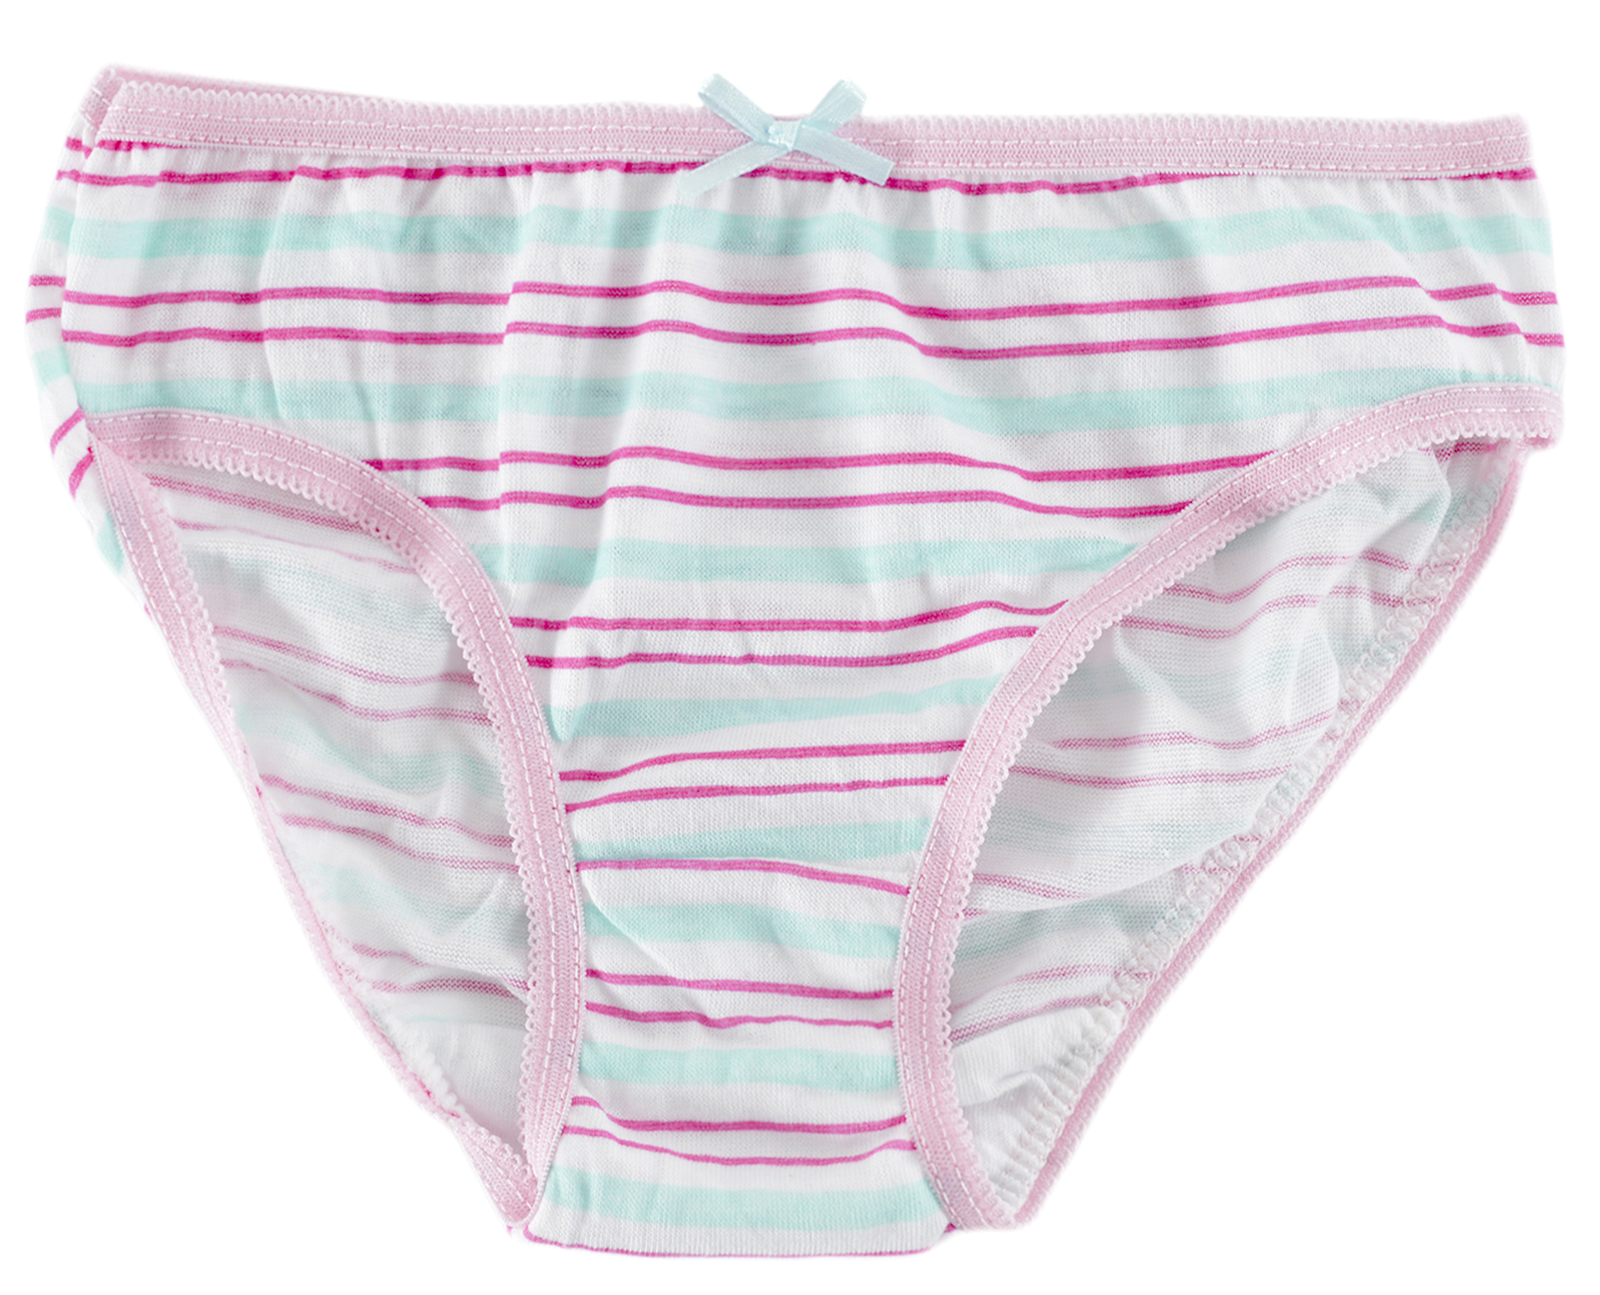 Kids Girls Boys 7 Pairs Pack 100% Cotton Briefs Knickers ...